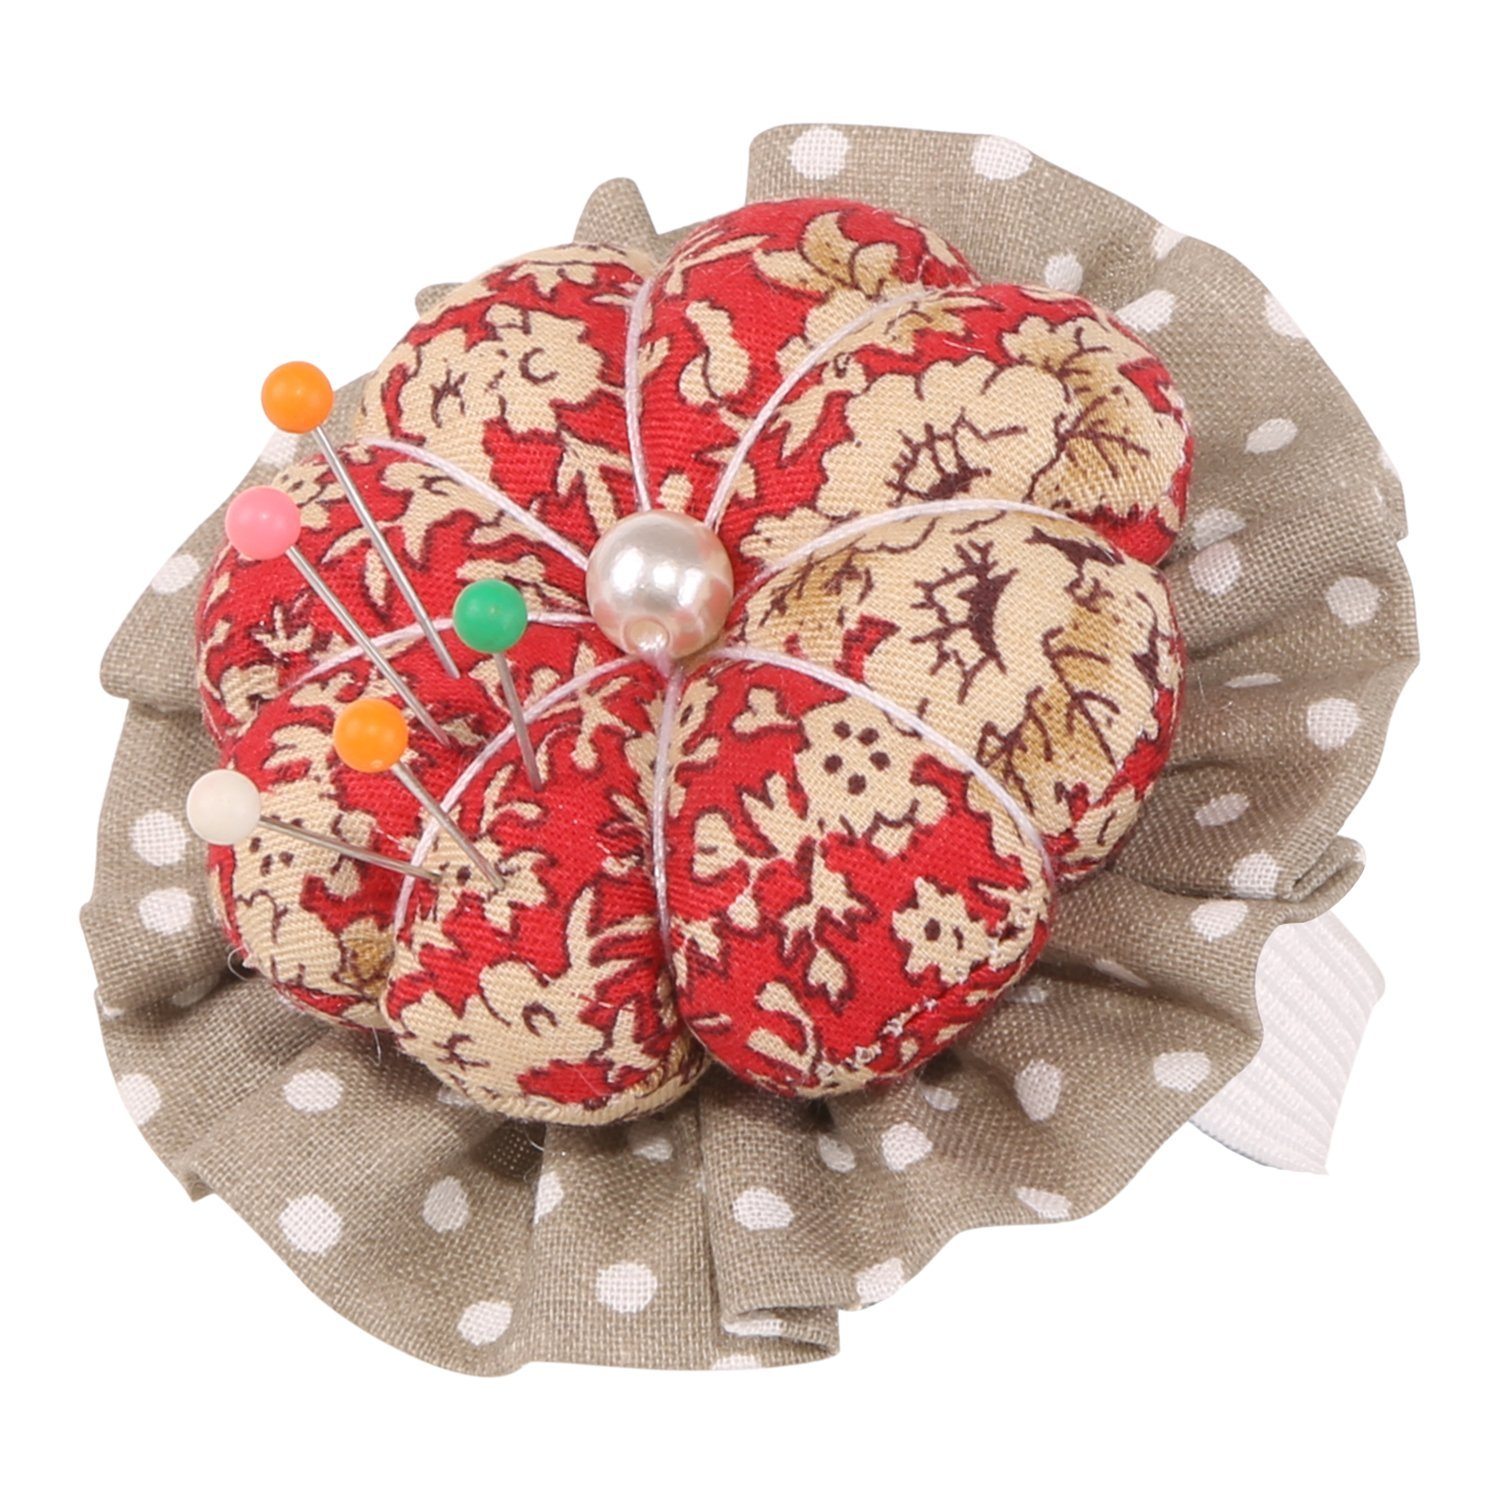 Neoviva Cotton Twill Fabric Coated Wrist Wearable Pin Cushion for Needlework, Style Flower Blossom, Floral Mandarin Red Polka Dot LTD